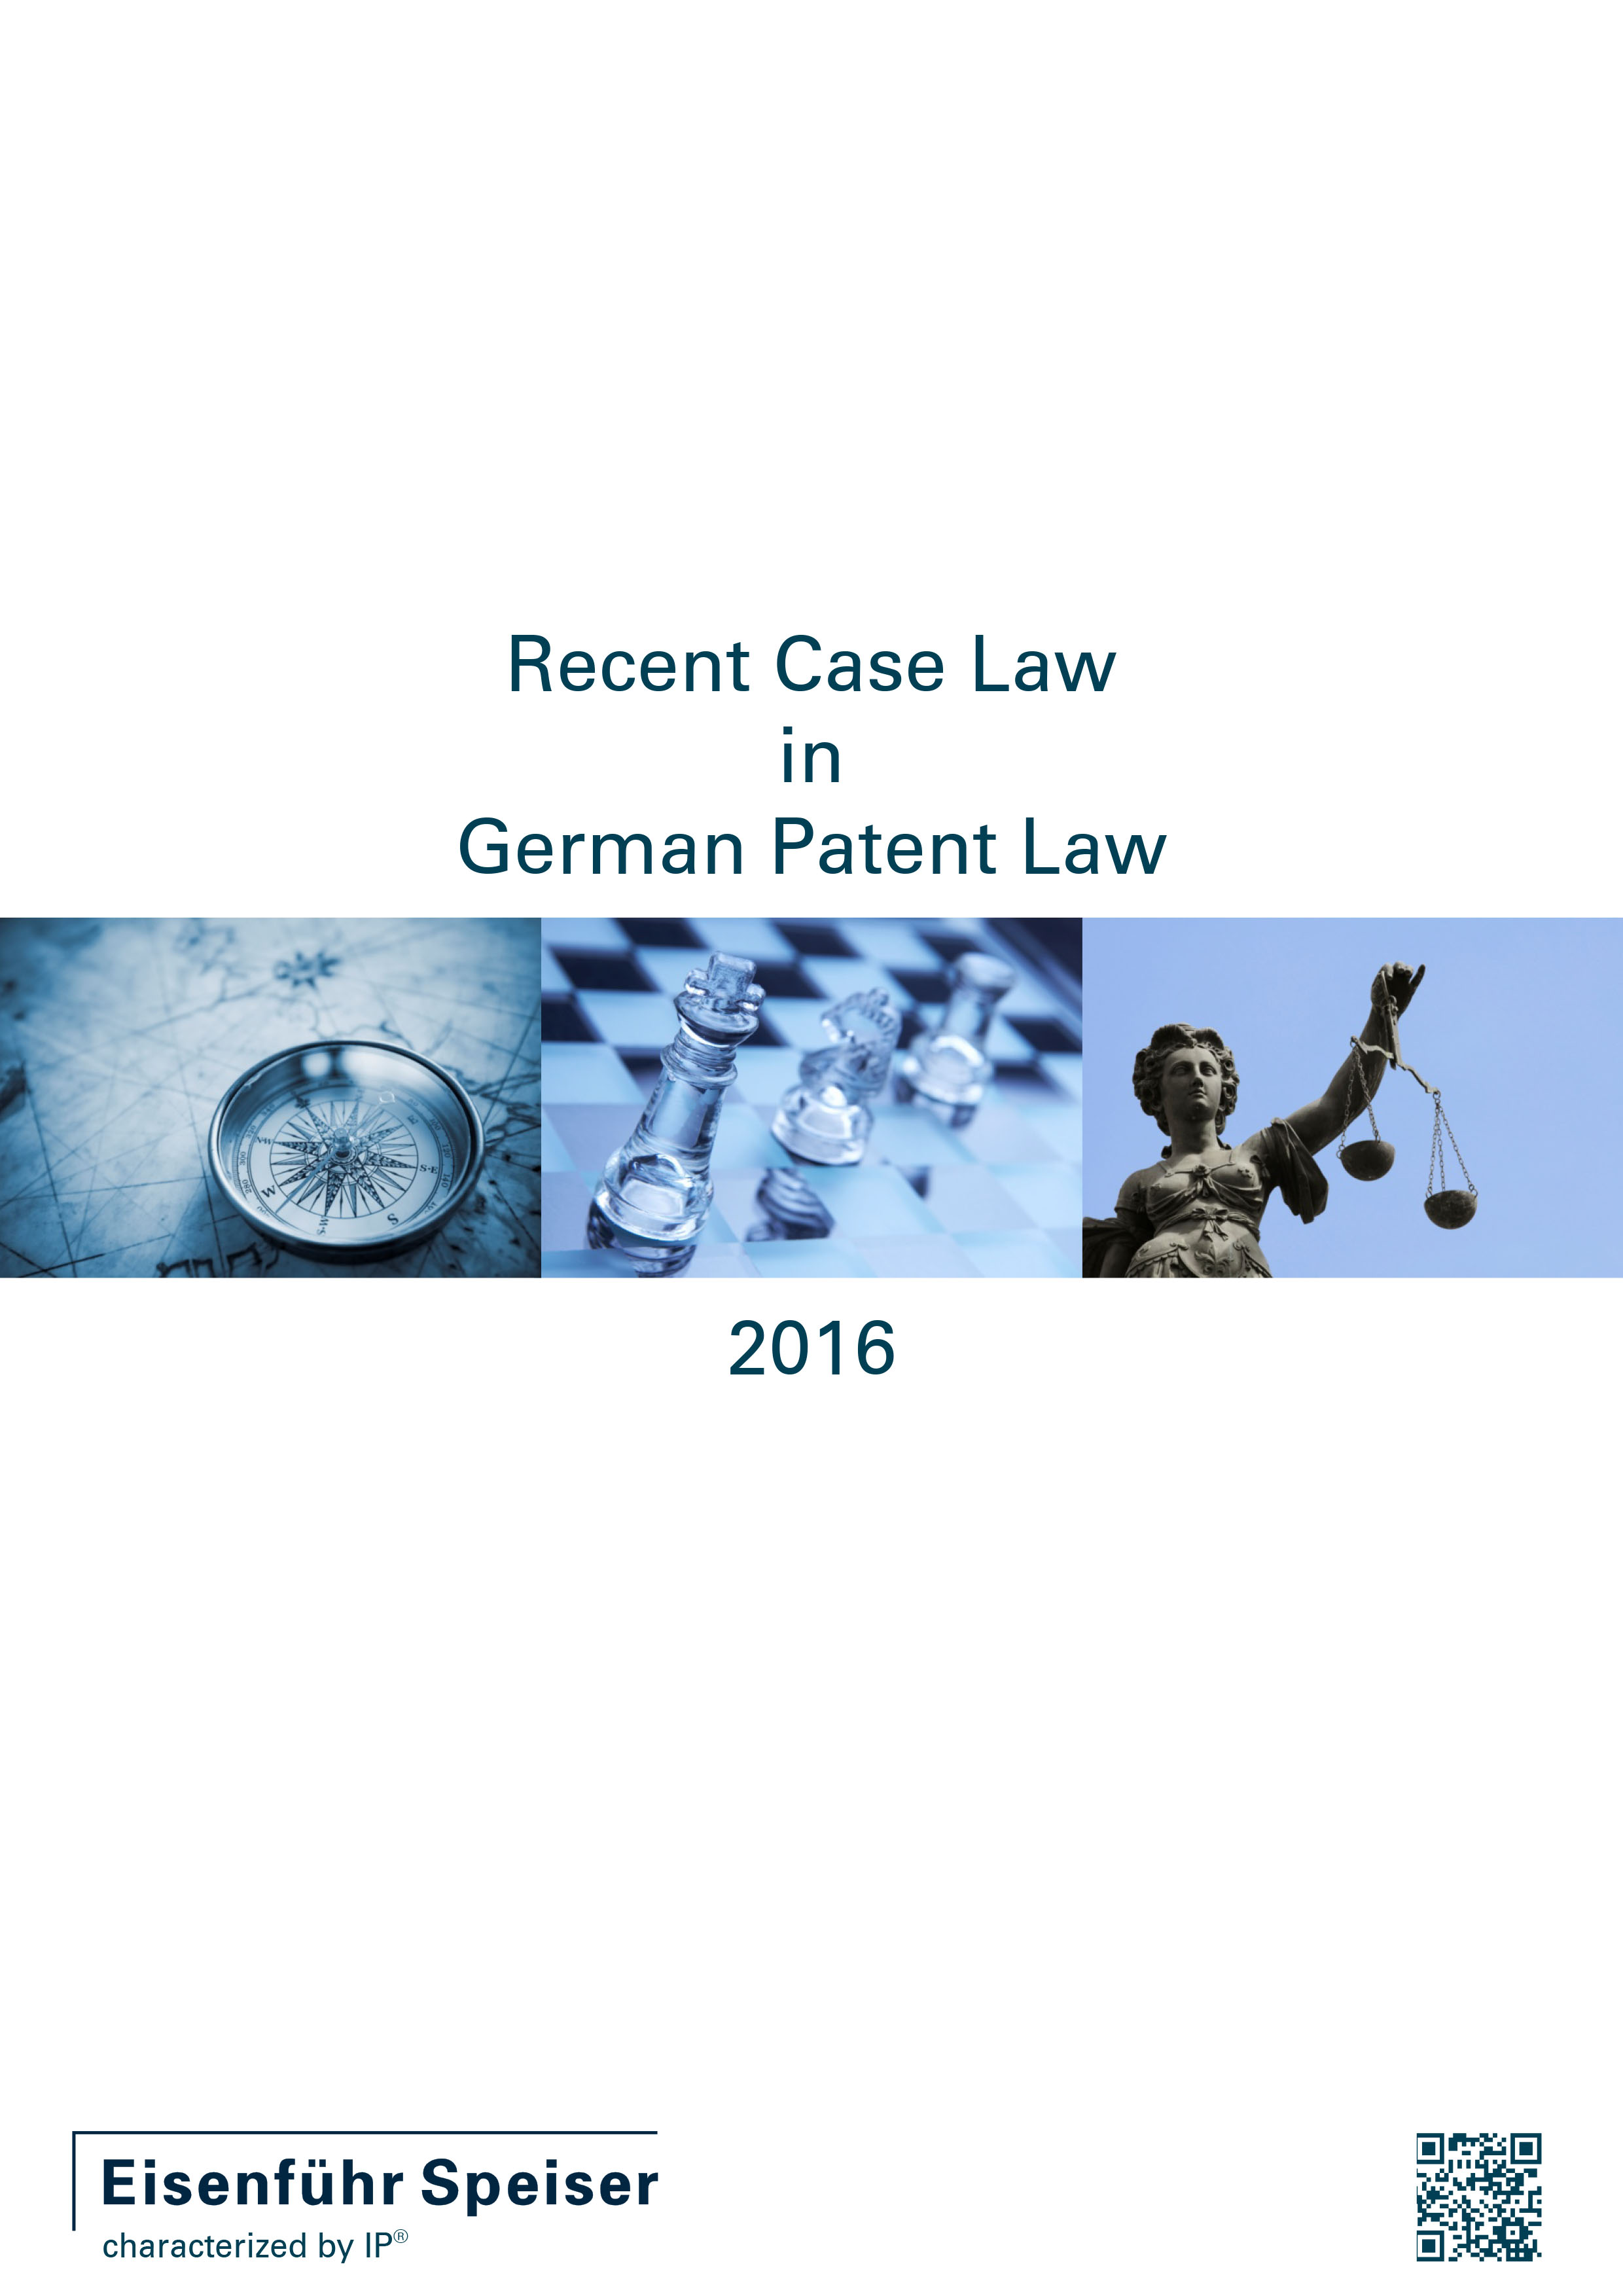 Recent Case Law in German Patent Law 2016